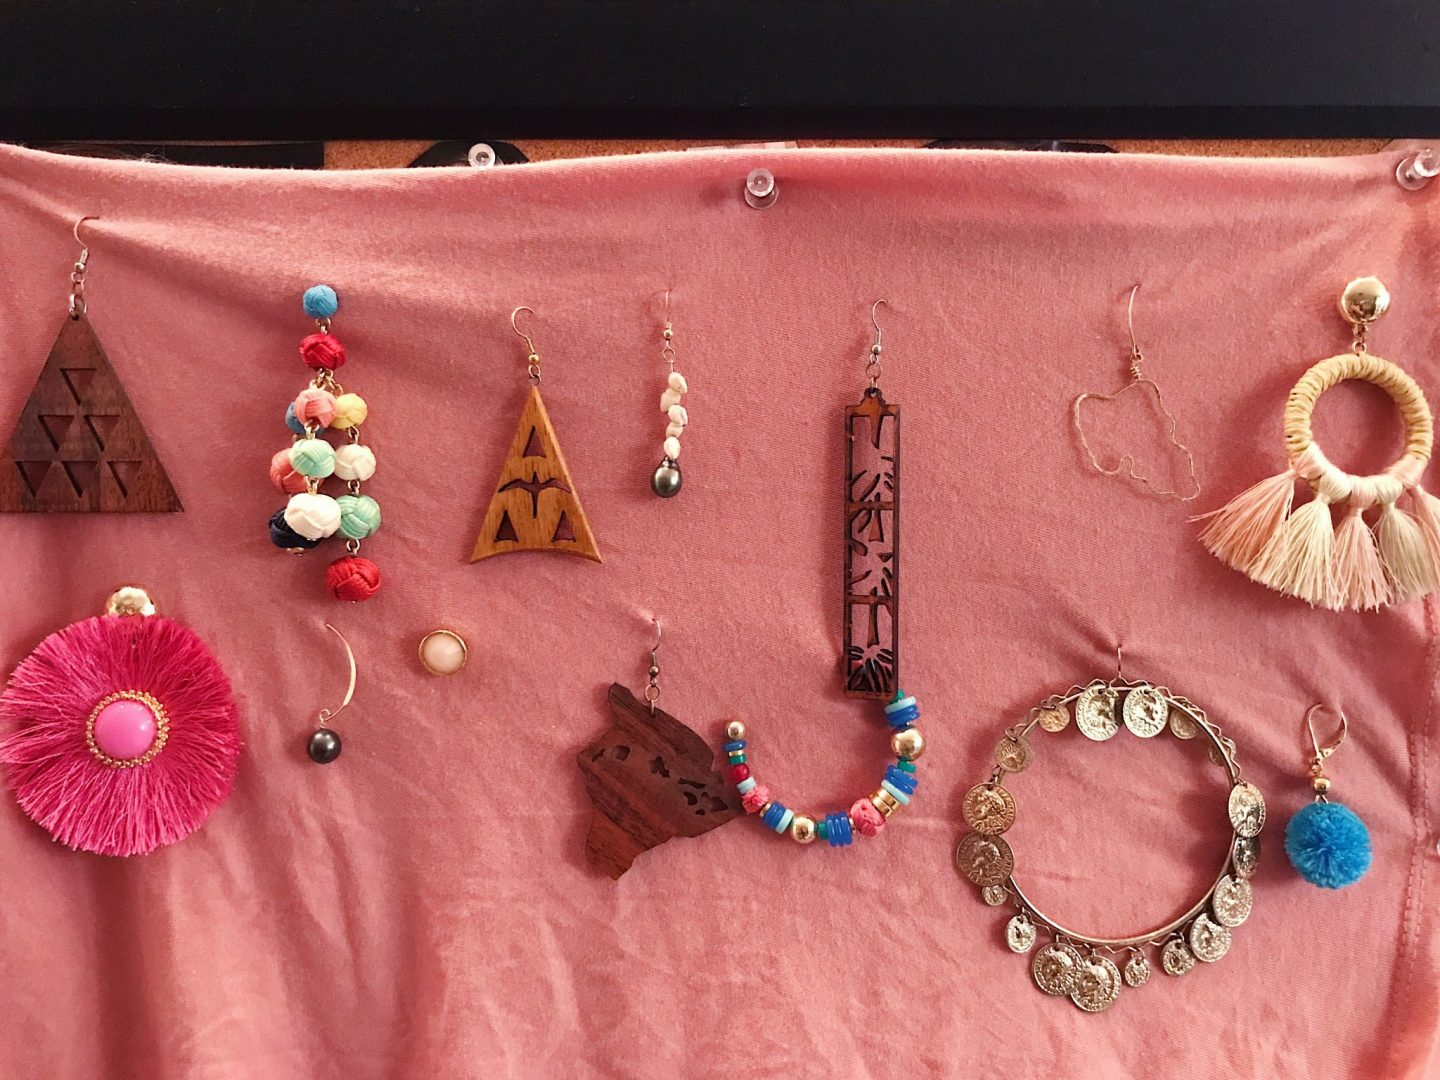 My collection of earrings